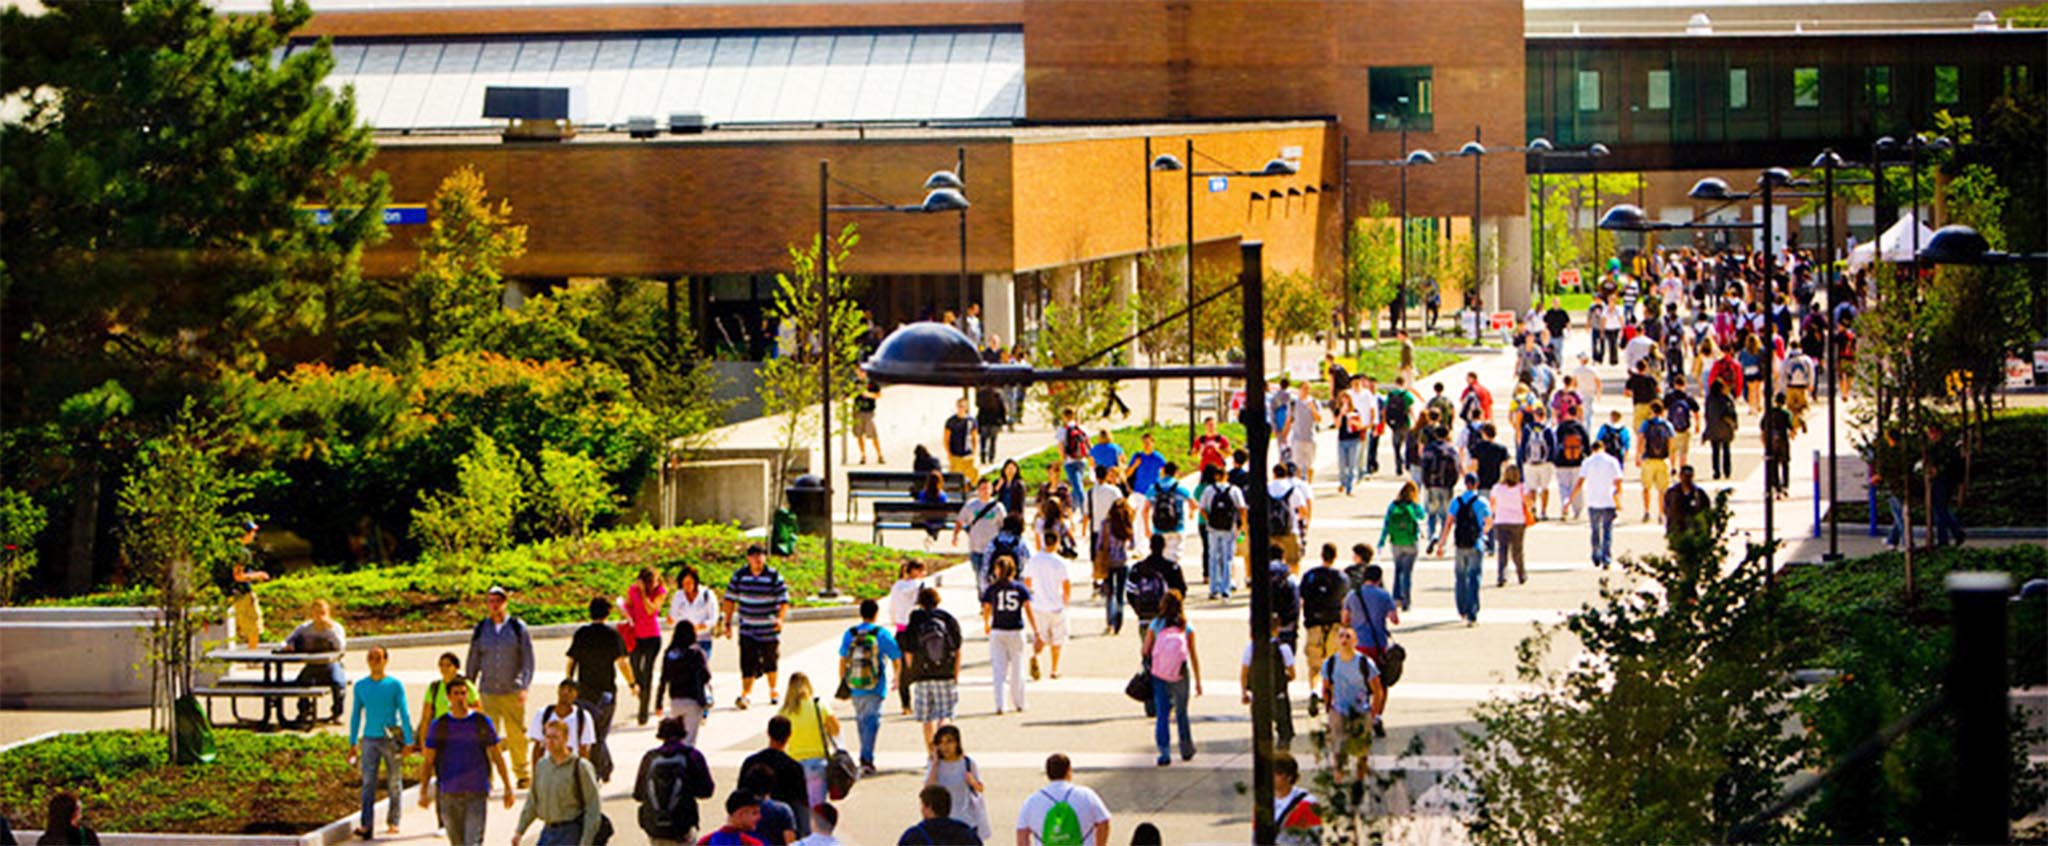 Students walking on Founder's Plaza on a sunny day.